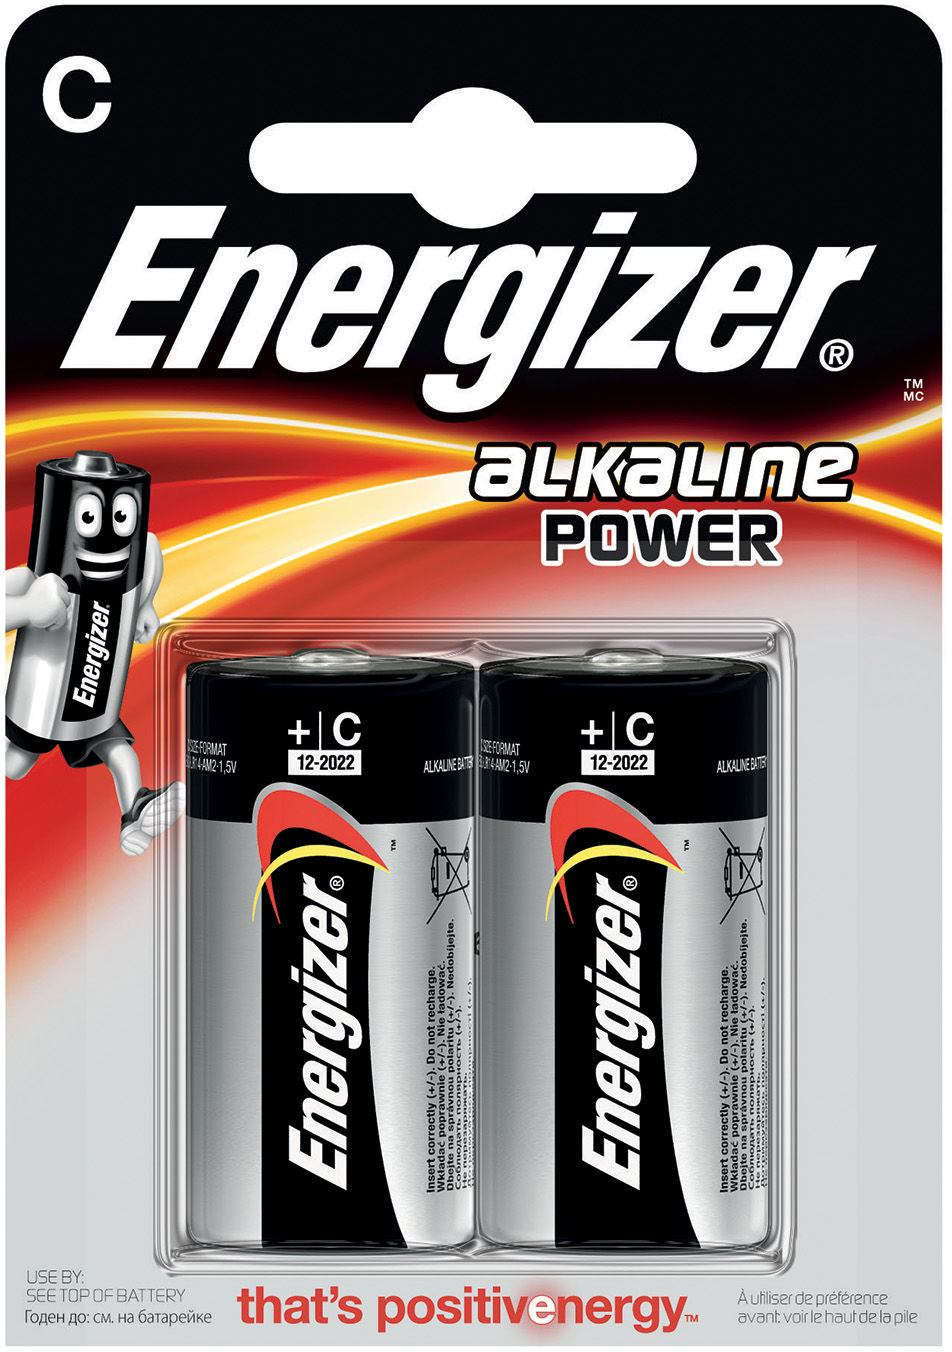 Energizer 7638900297324 Energizer Alkaline Power C Single Use